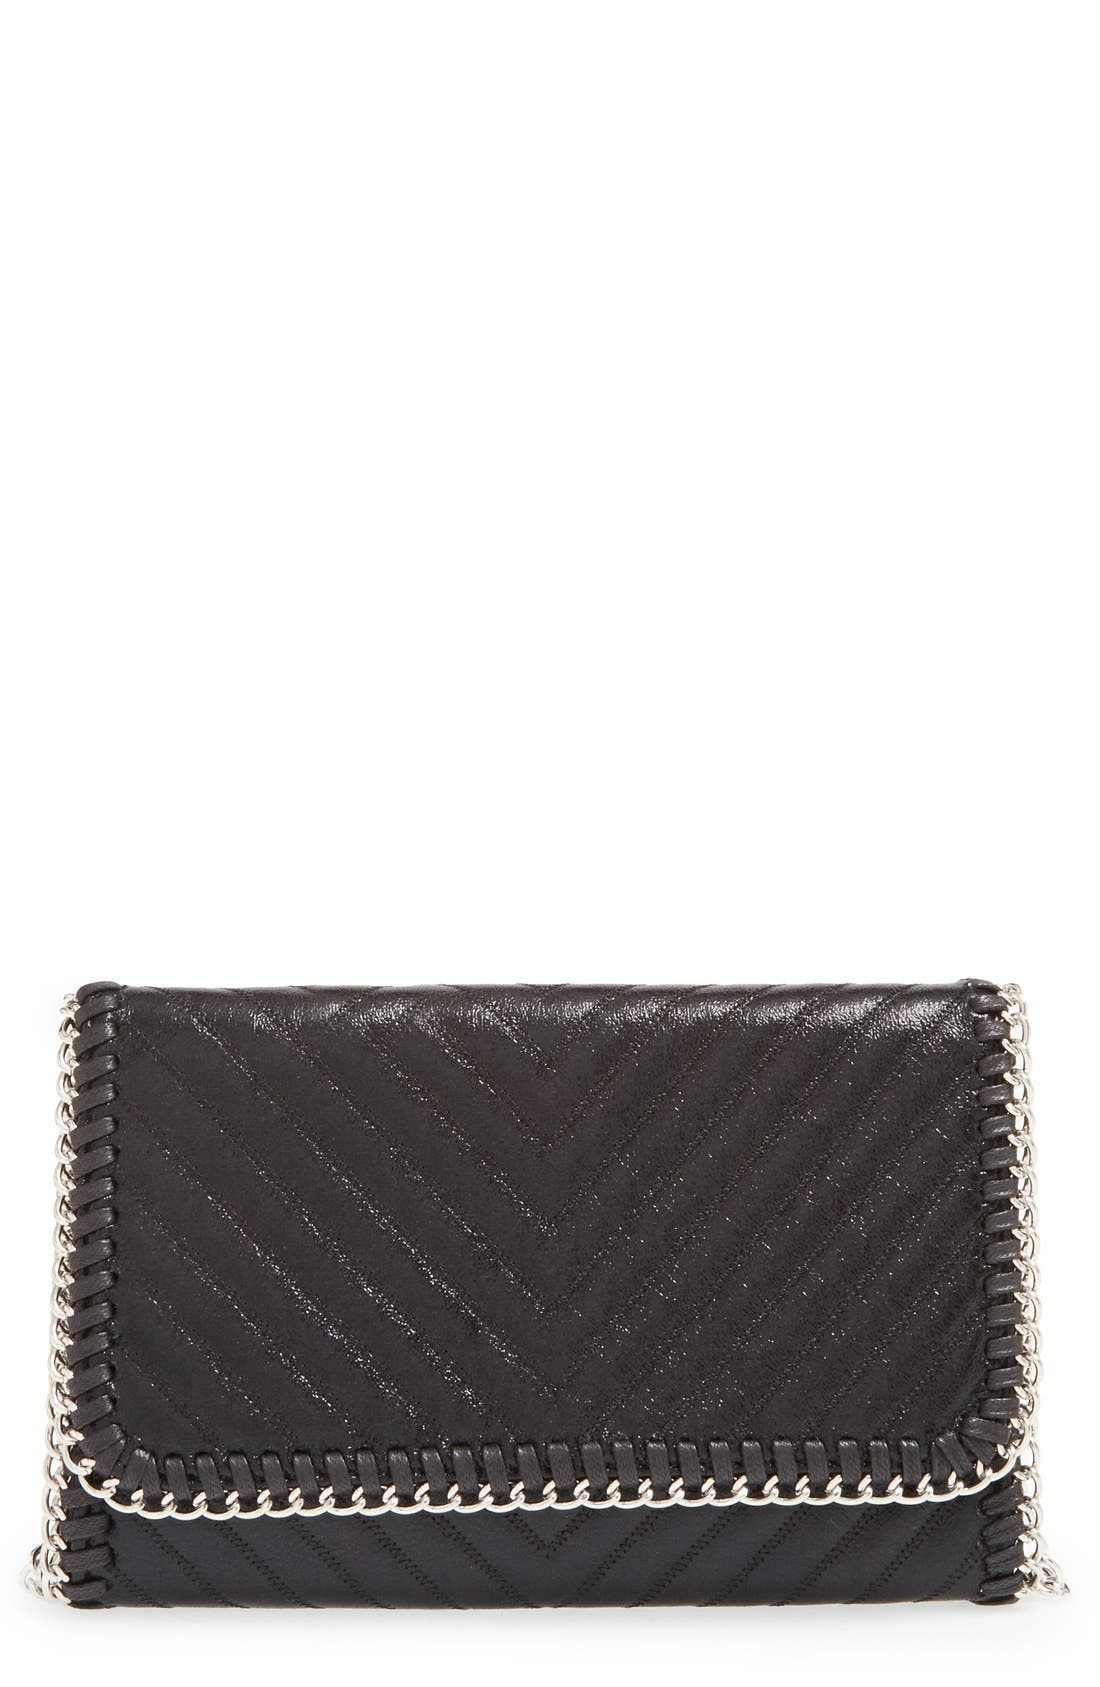 CHELSEA28, Quilted Mini Clutch, Main thumbnail 1, color, 001